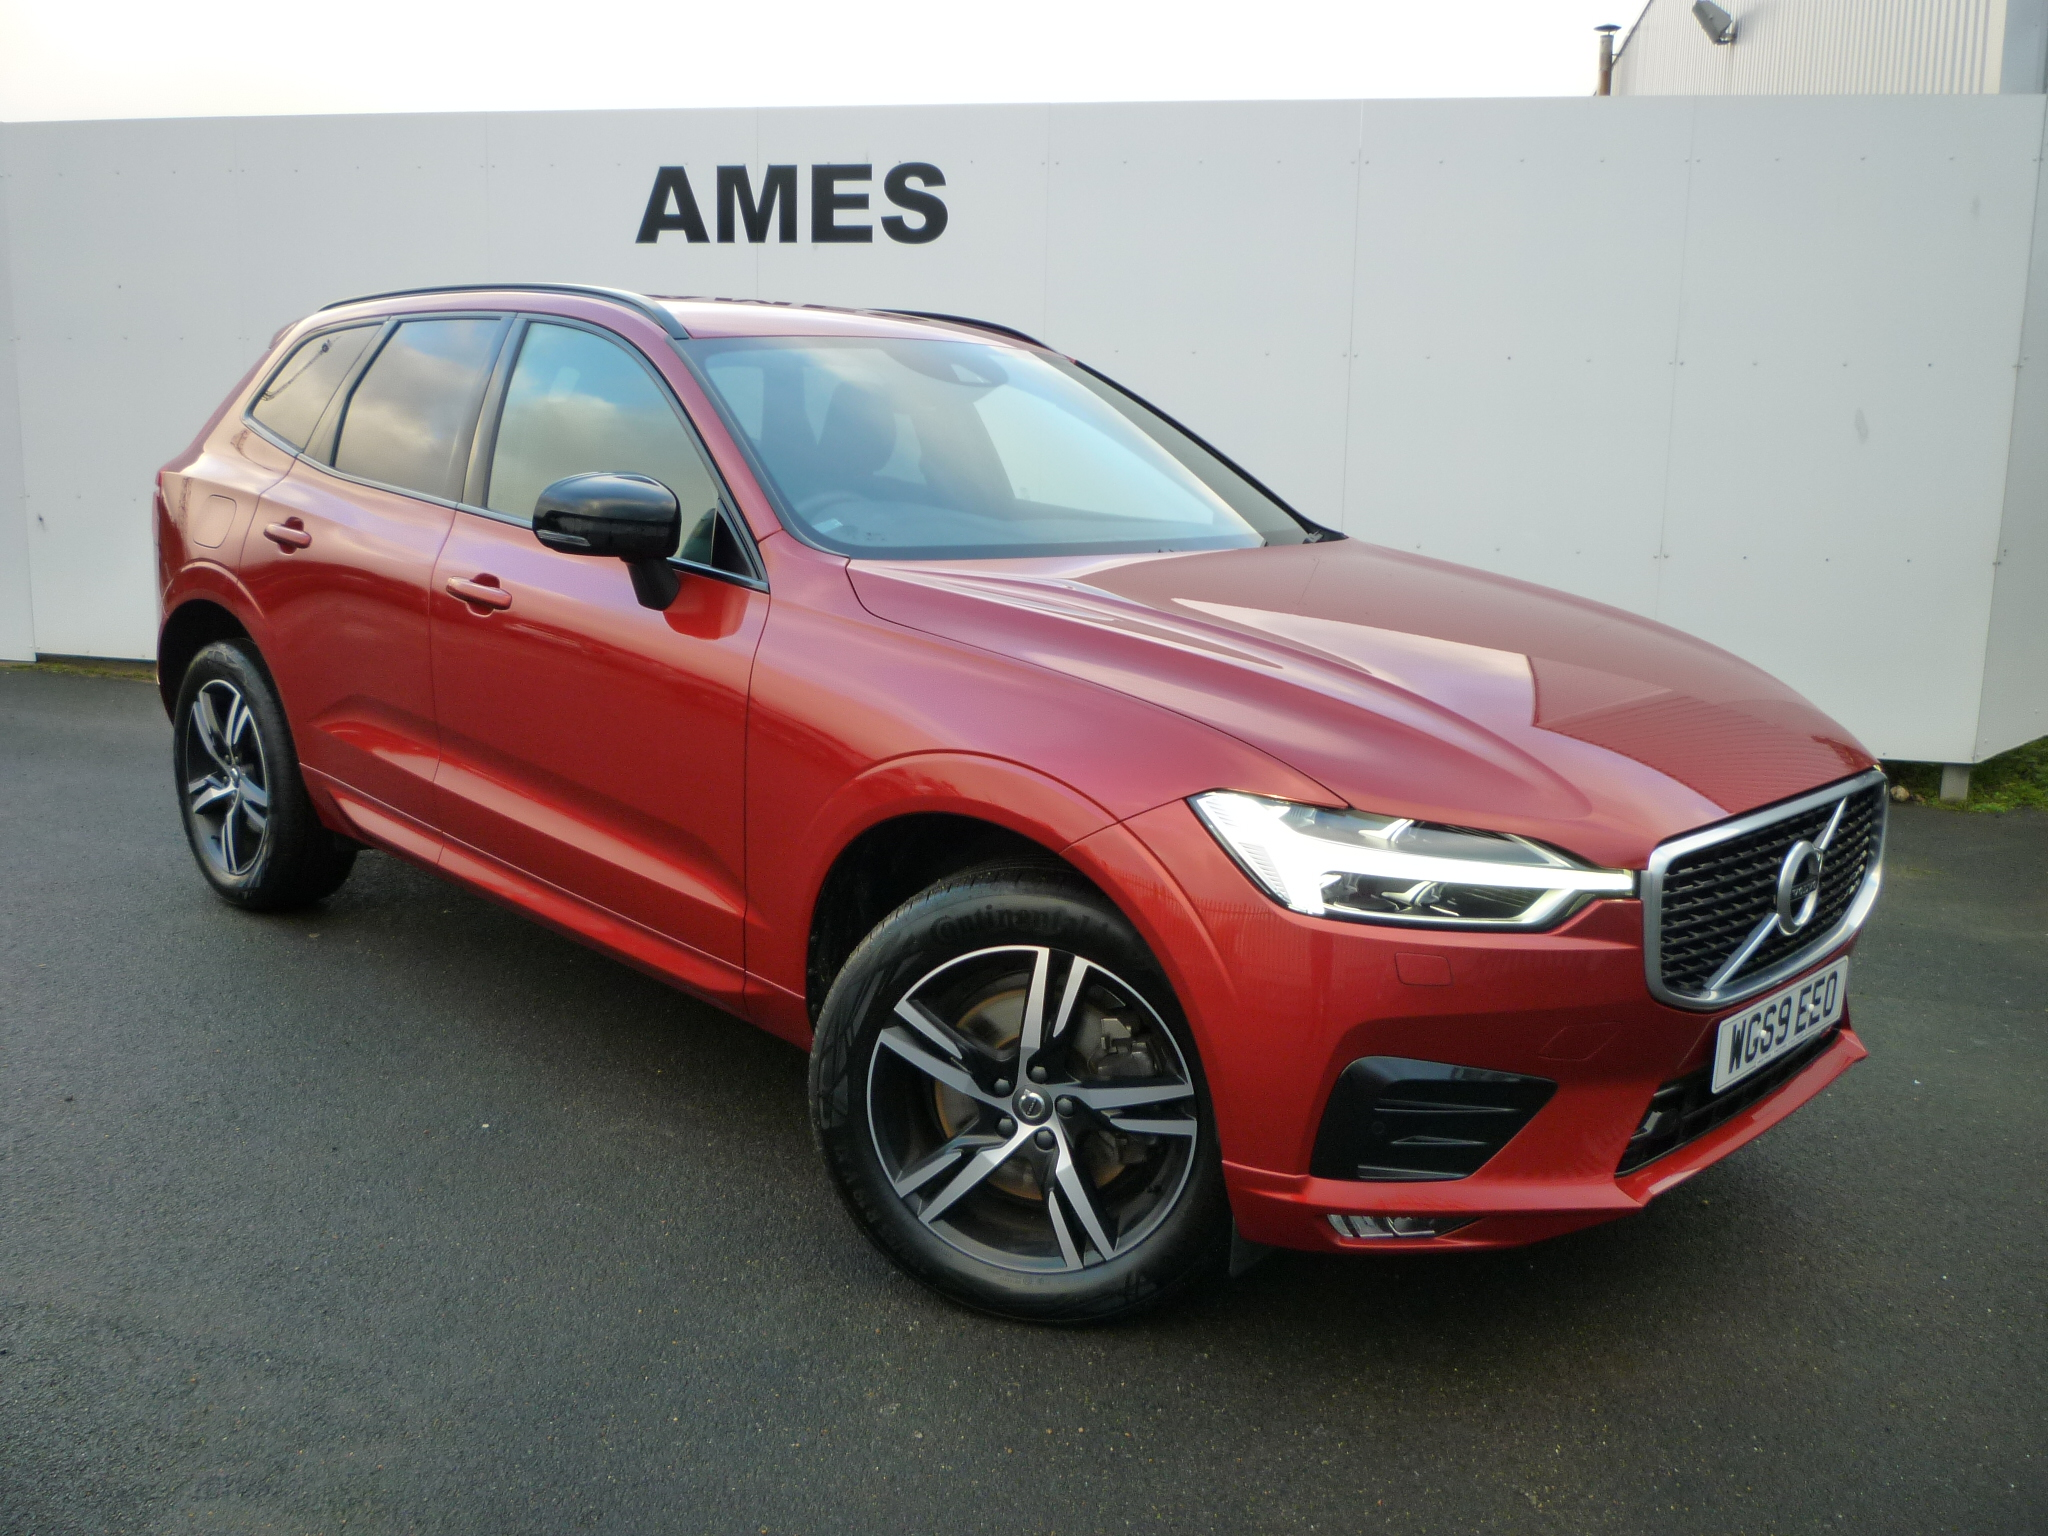 2020 Volvo XC60 ESTATE 2.0 T5 [250] R DESIGN 5dr Geartronic